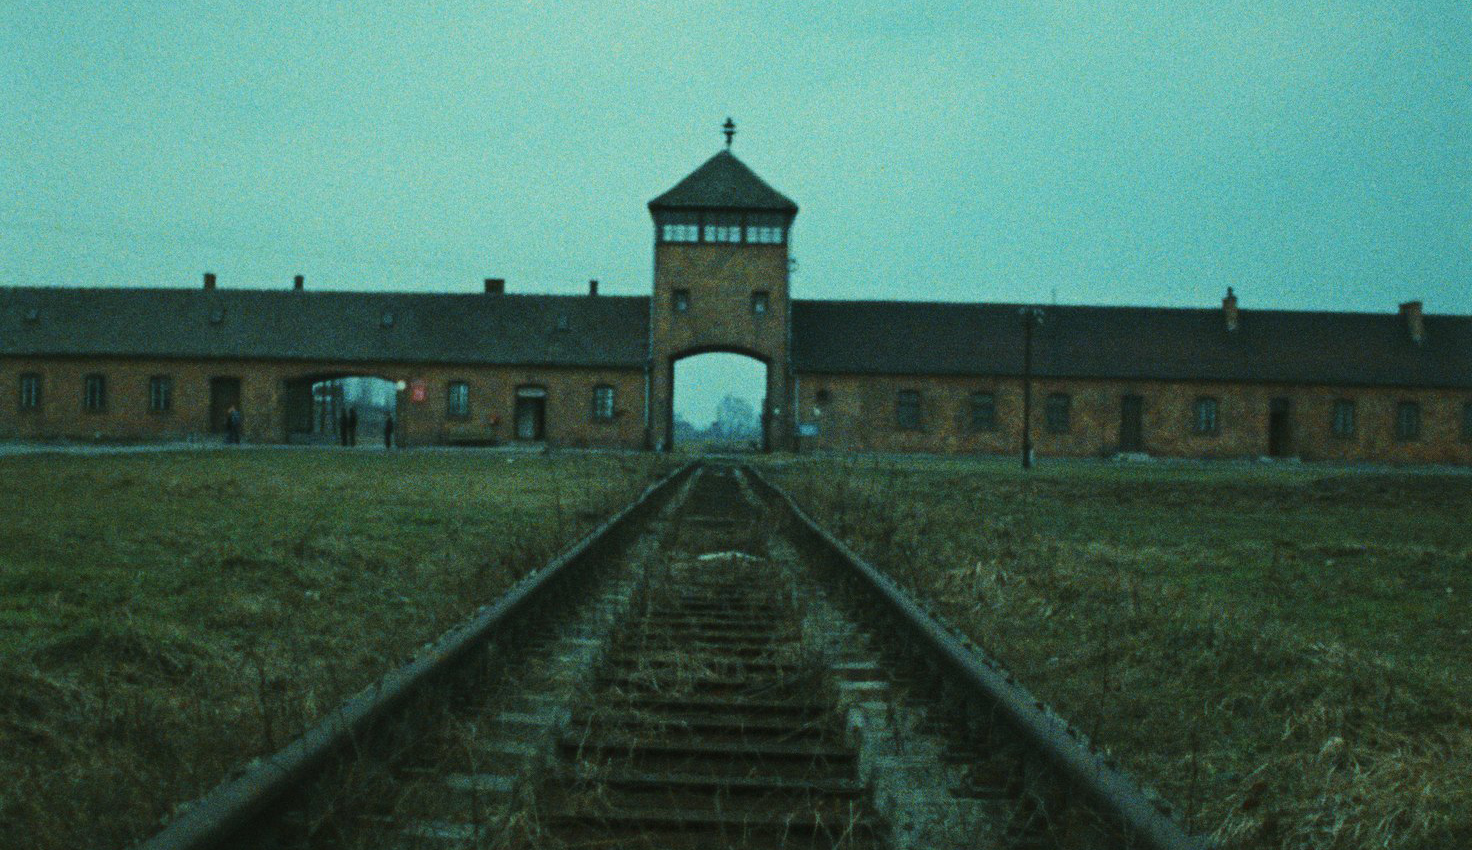 From Claude Lanzmann's Shoah, 1985.